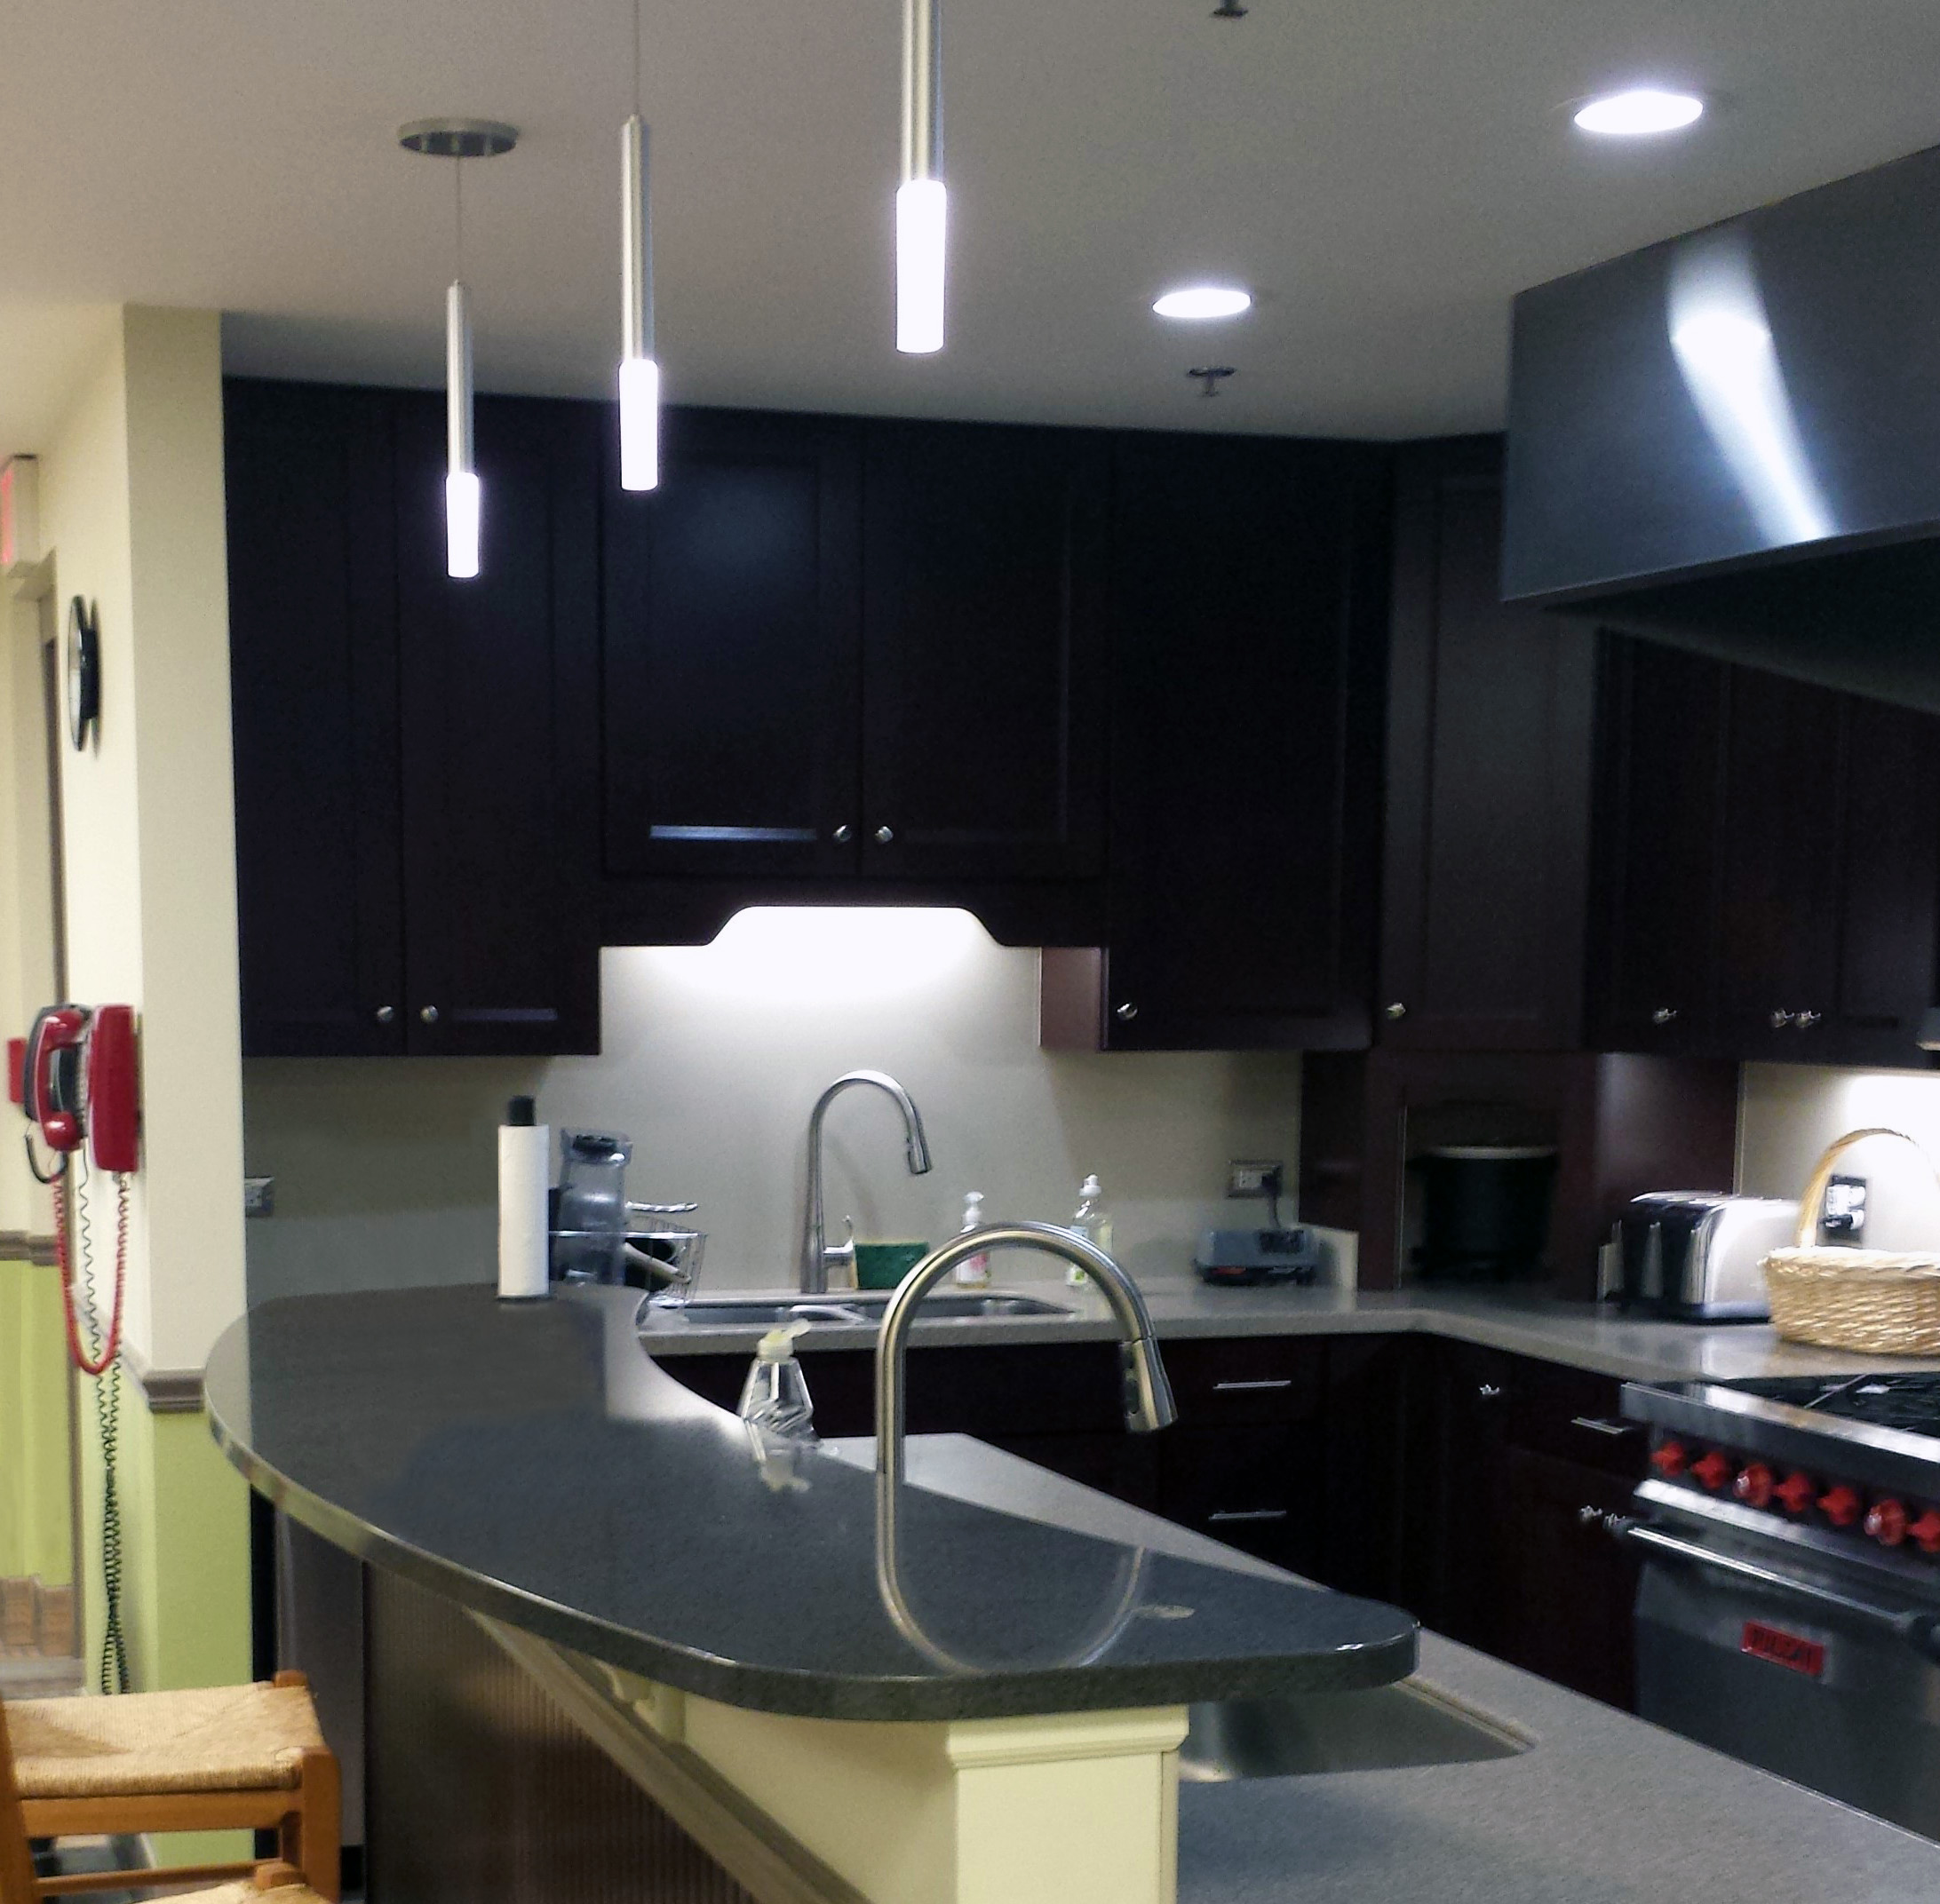 winnetka kitchen 2.jpg